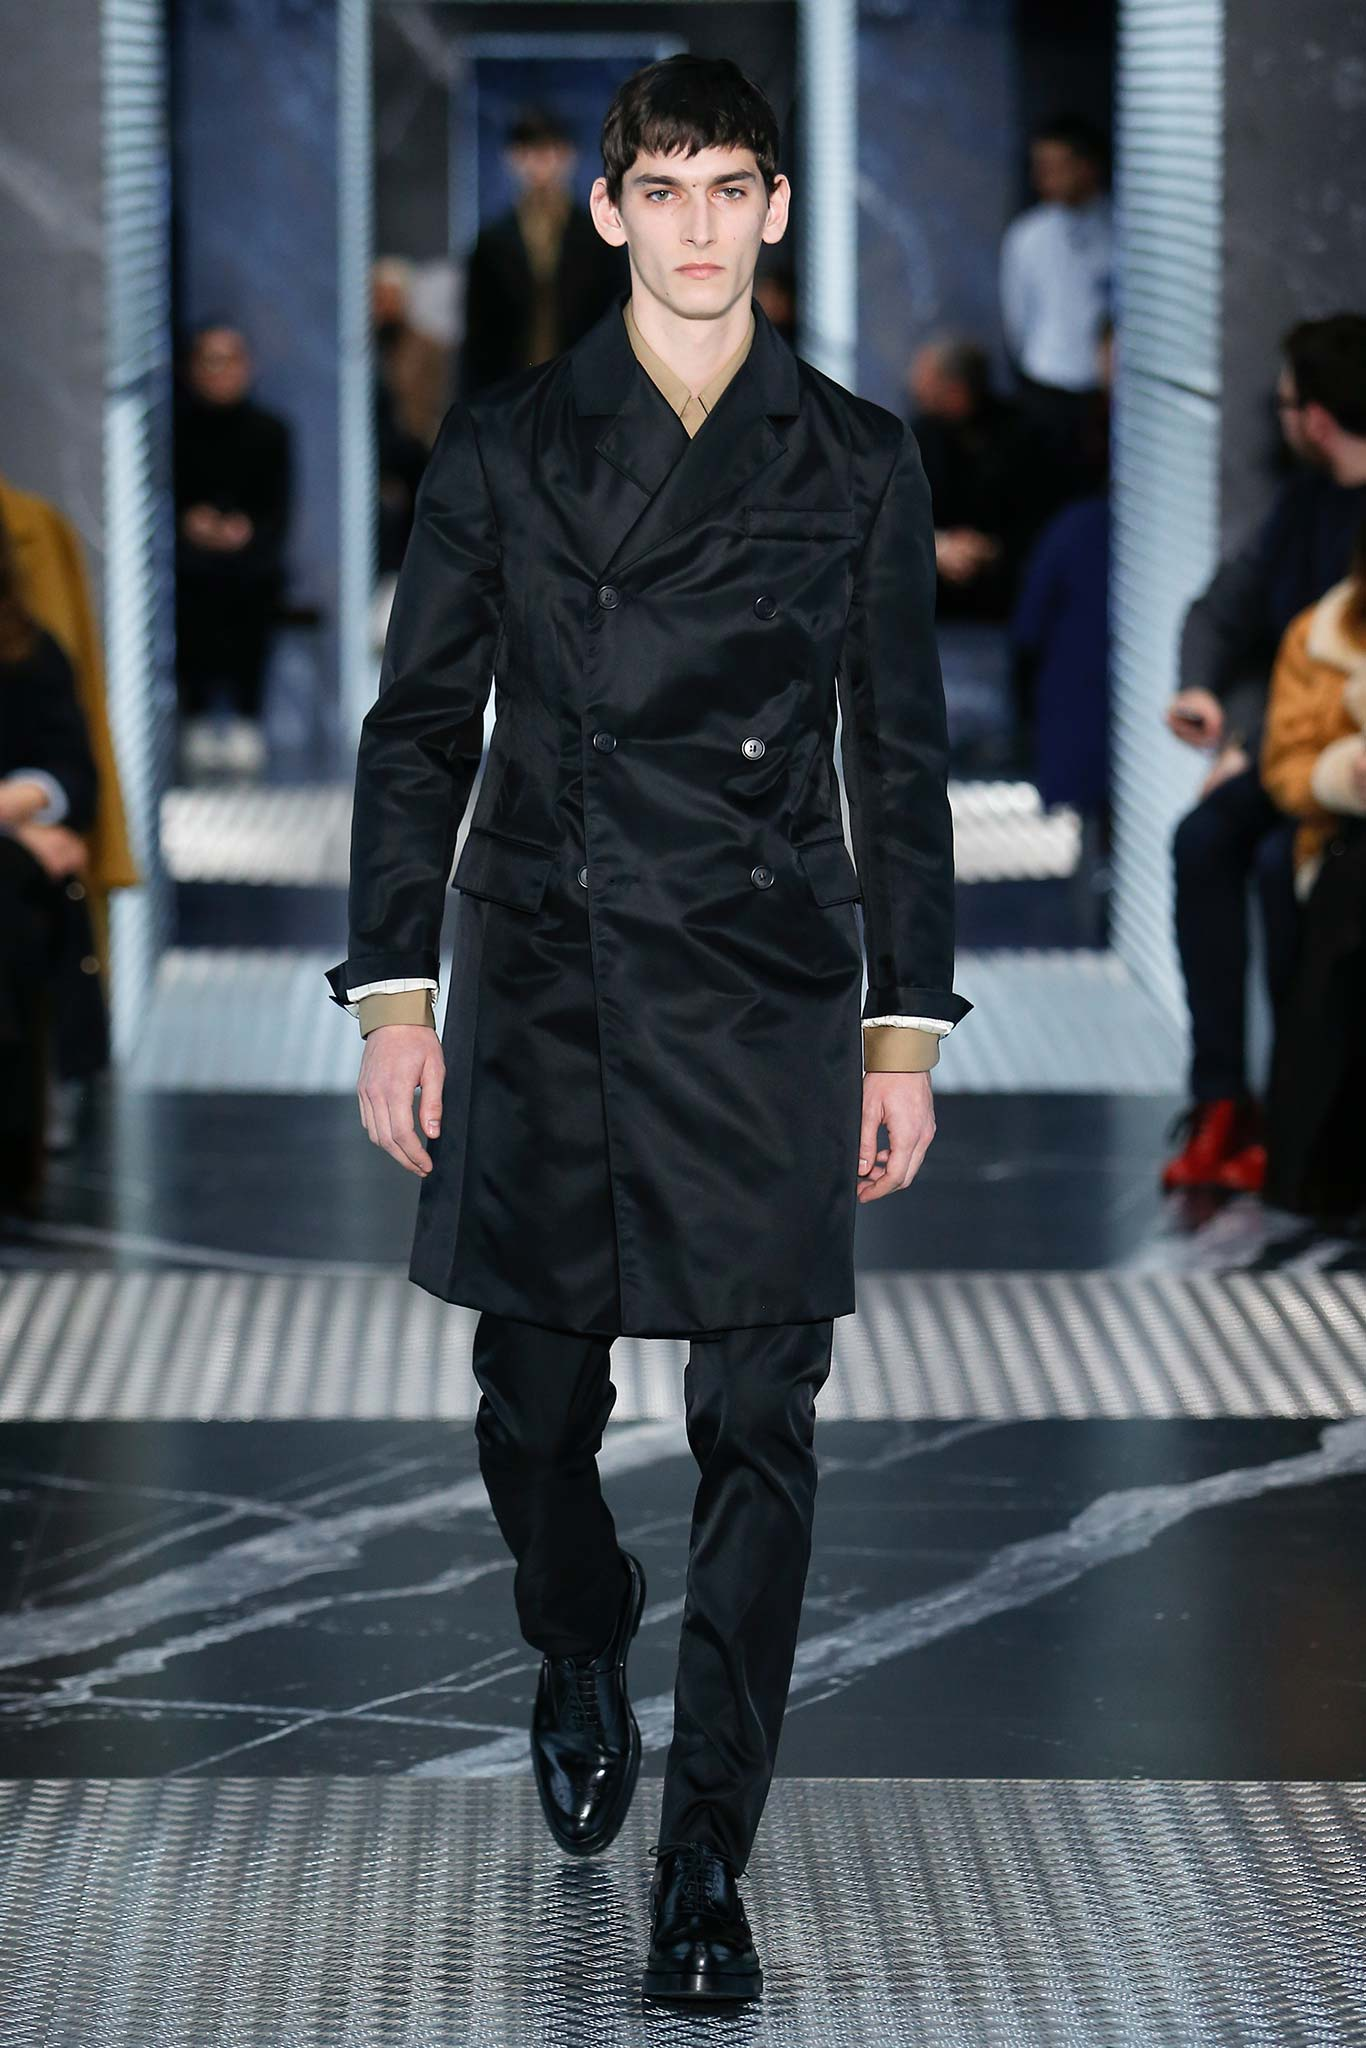 88a56358f38a Miuccia Prada unfolding the various relationships between the way men and  women can dress offered a mysterious and pleasurable show to challenge  again the ...